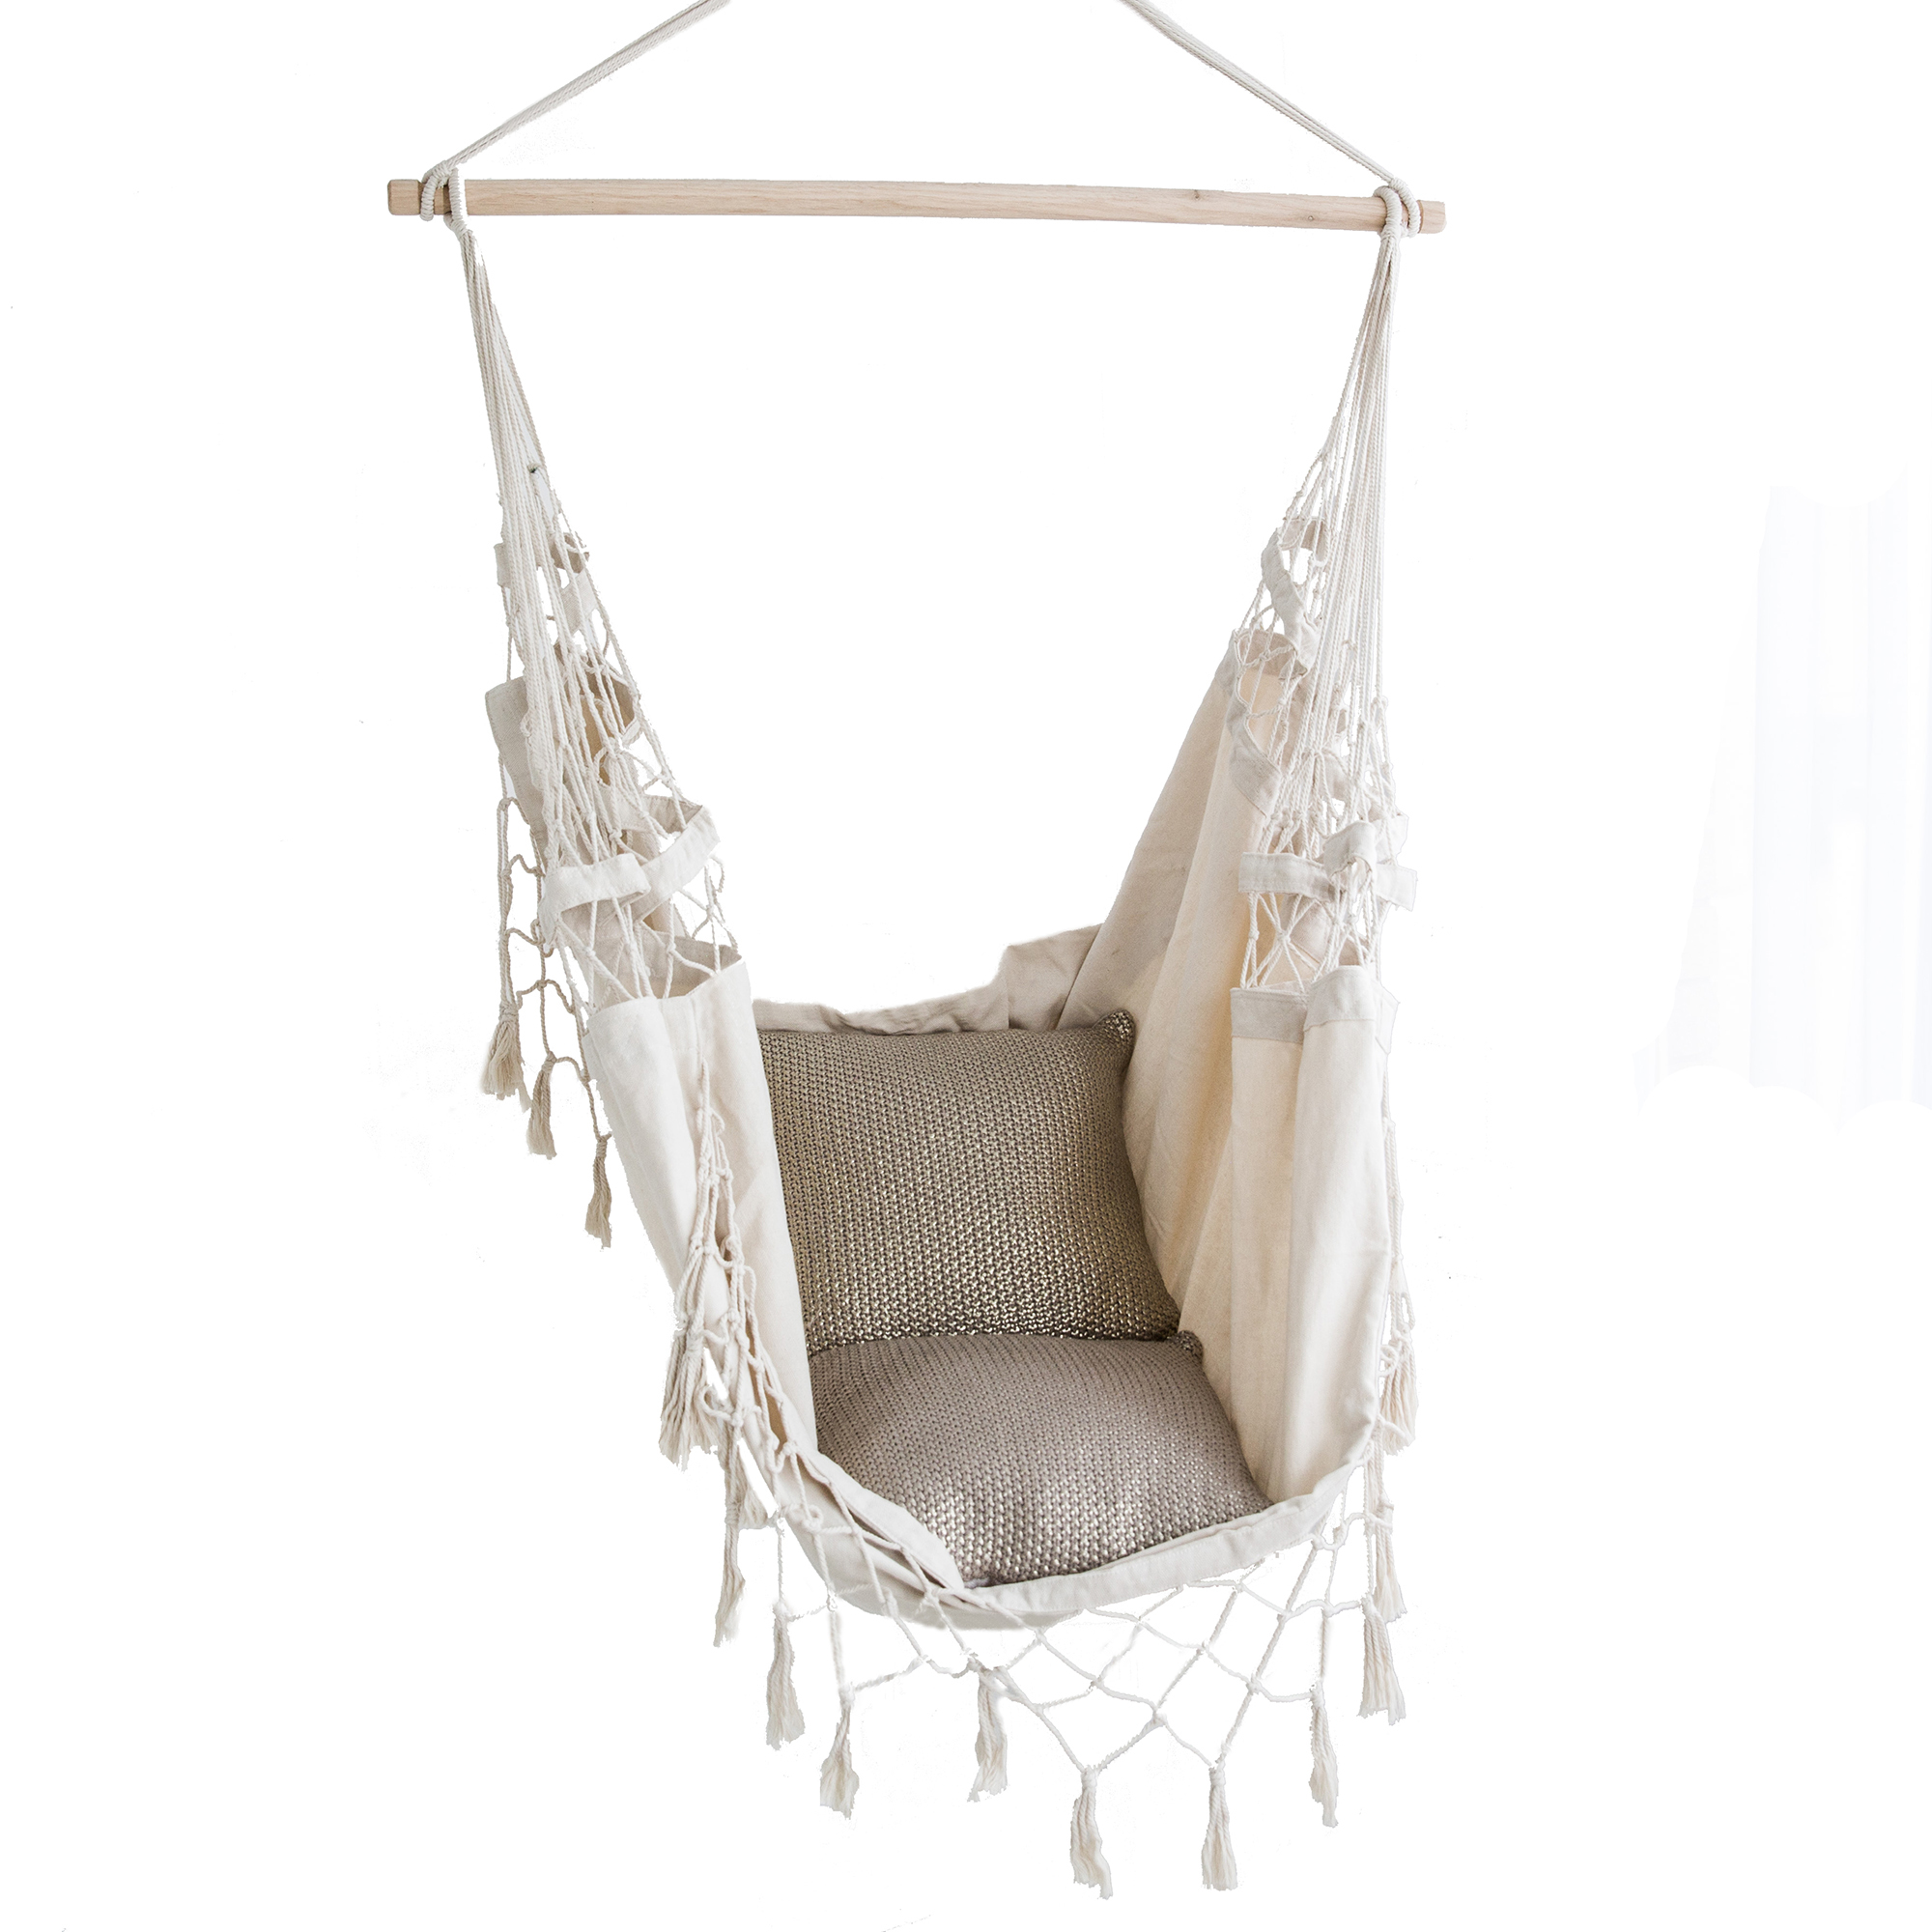 Hanging swing chair Rattan Swing Sku ivor1018 Temple Webster French Provincial Hanging Hammock Chair Cream Temple Webster